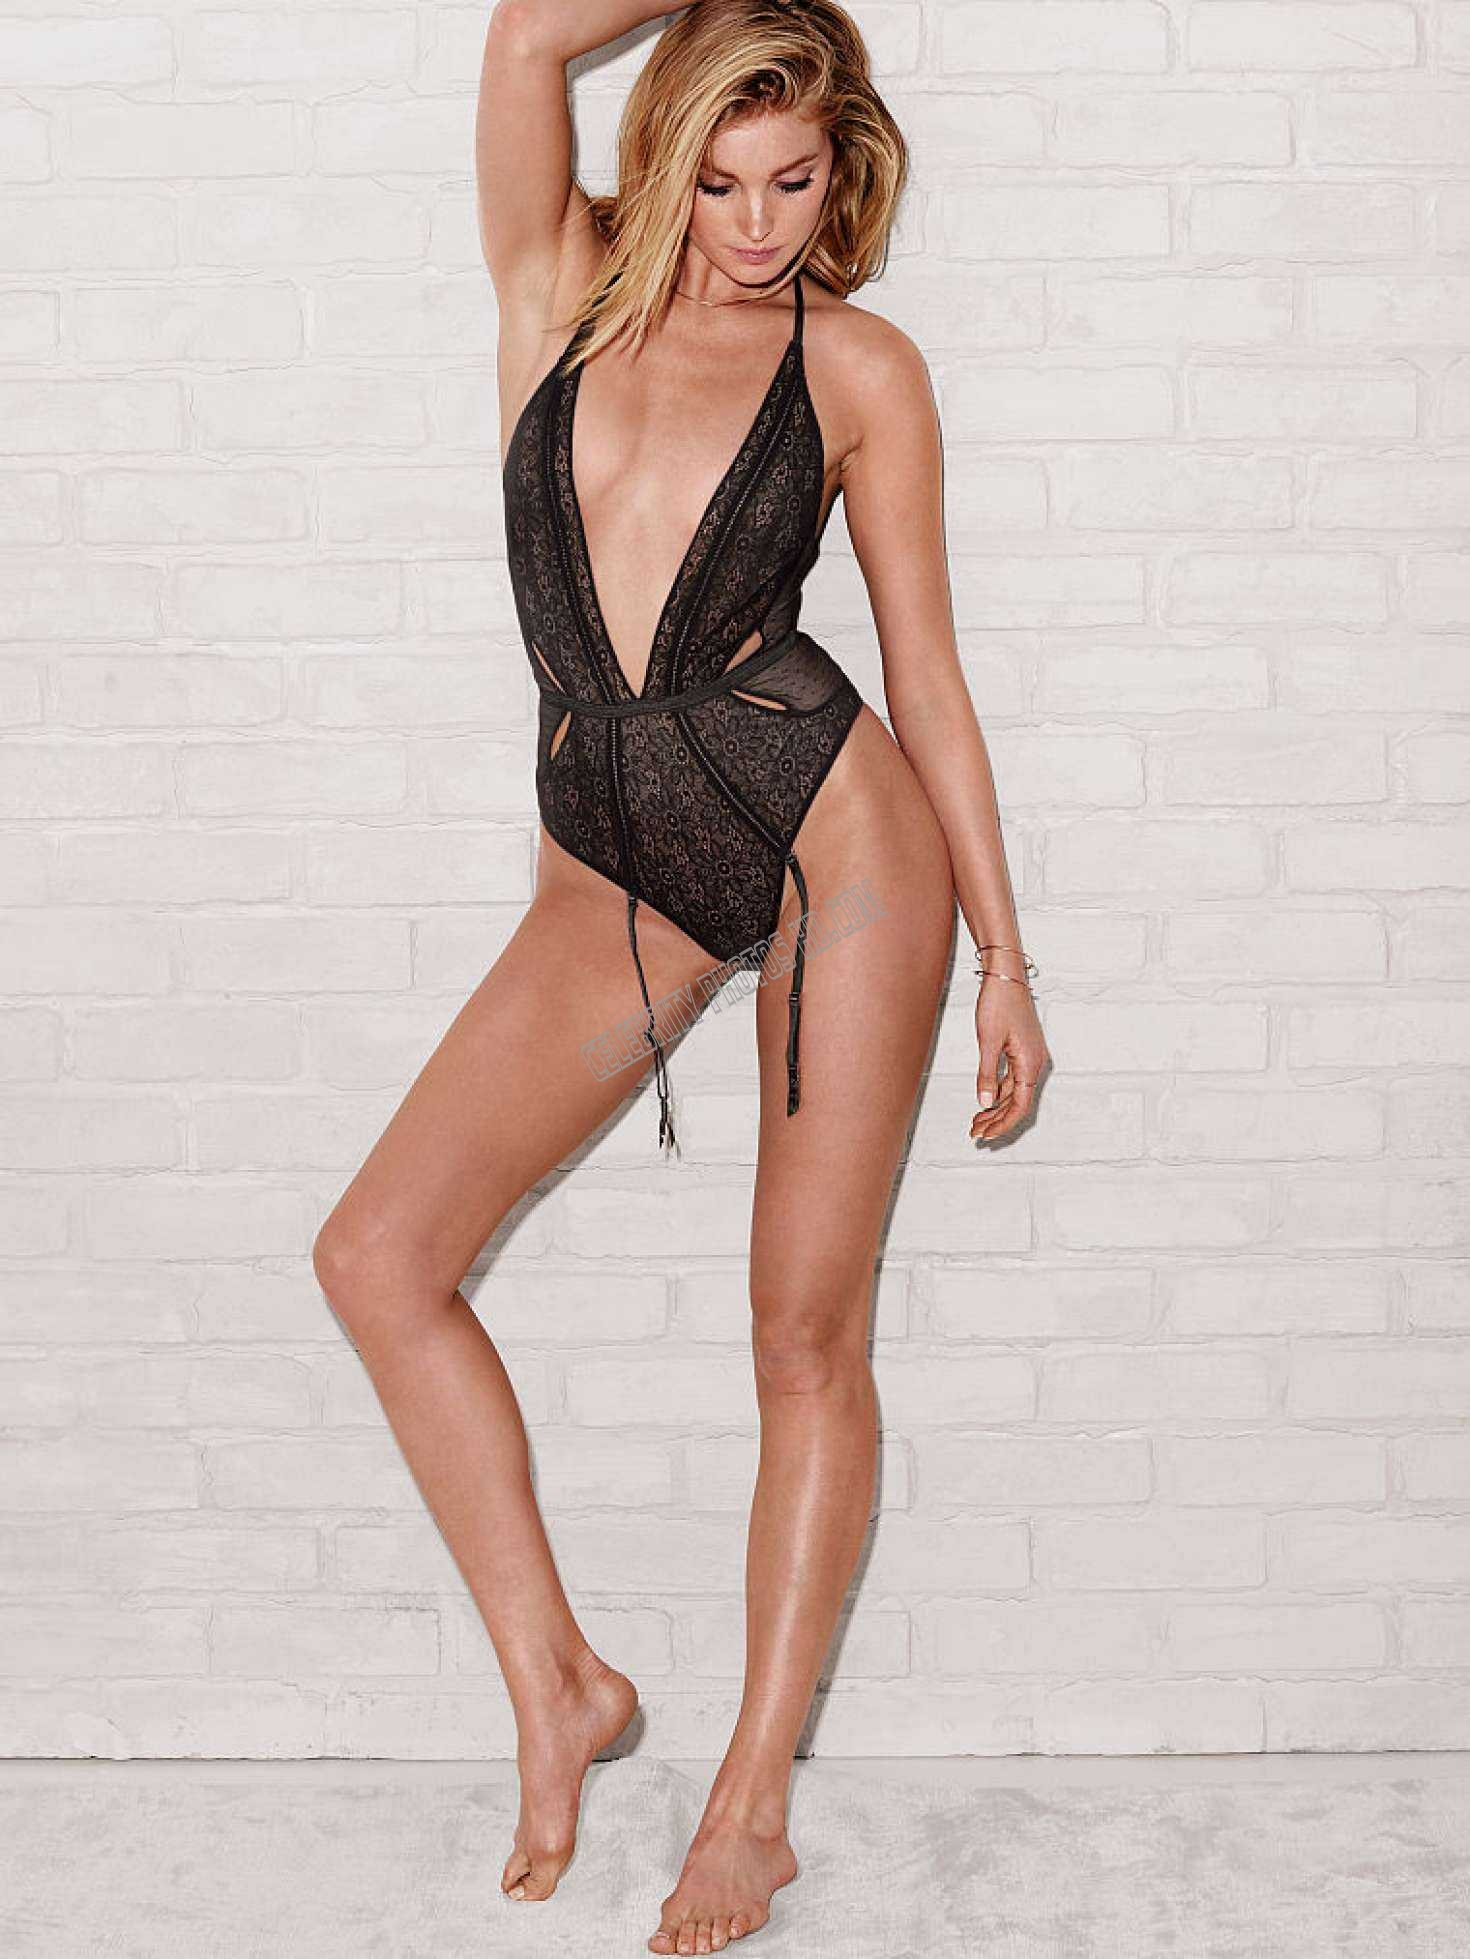 Elsa Hosk Glass Magazine (1)